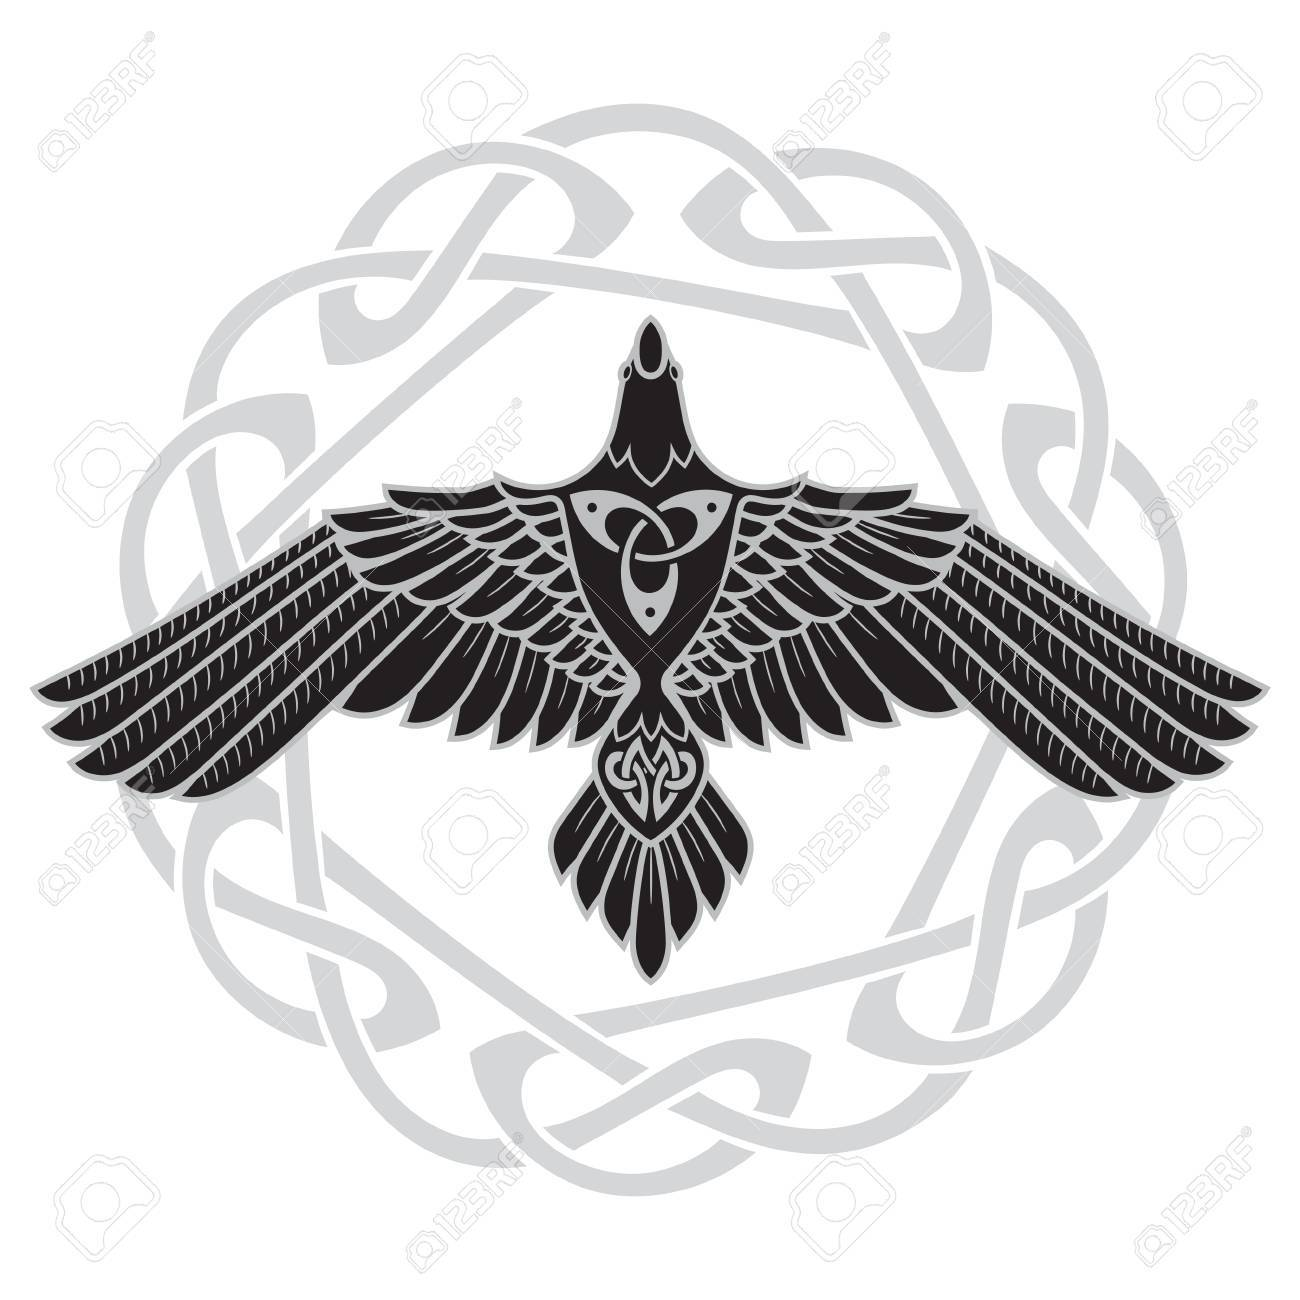 The raven of odin in norse celtic style royalty free cliparts the raven of odin in norse celtic style stock vector 86737481 biocorpaavc